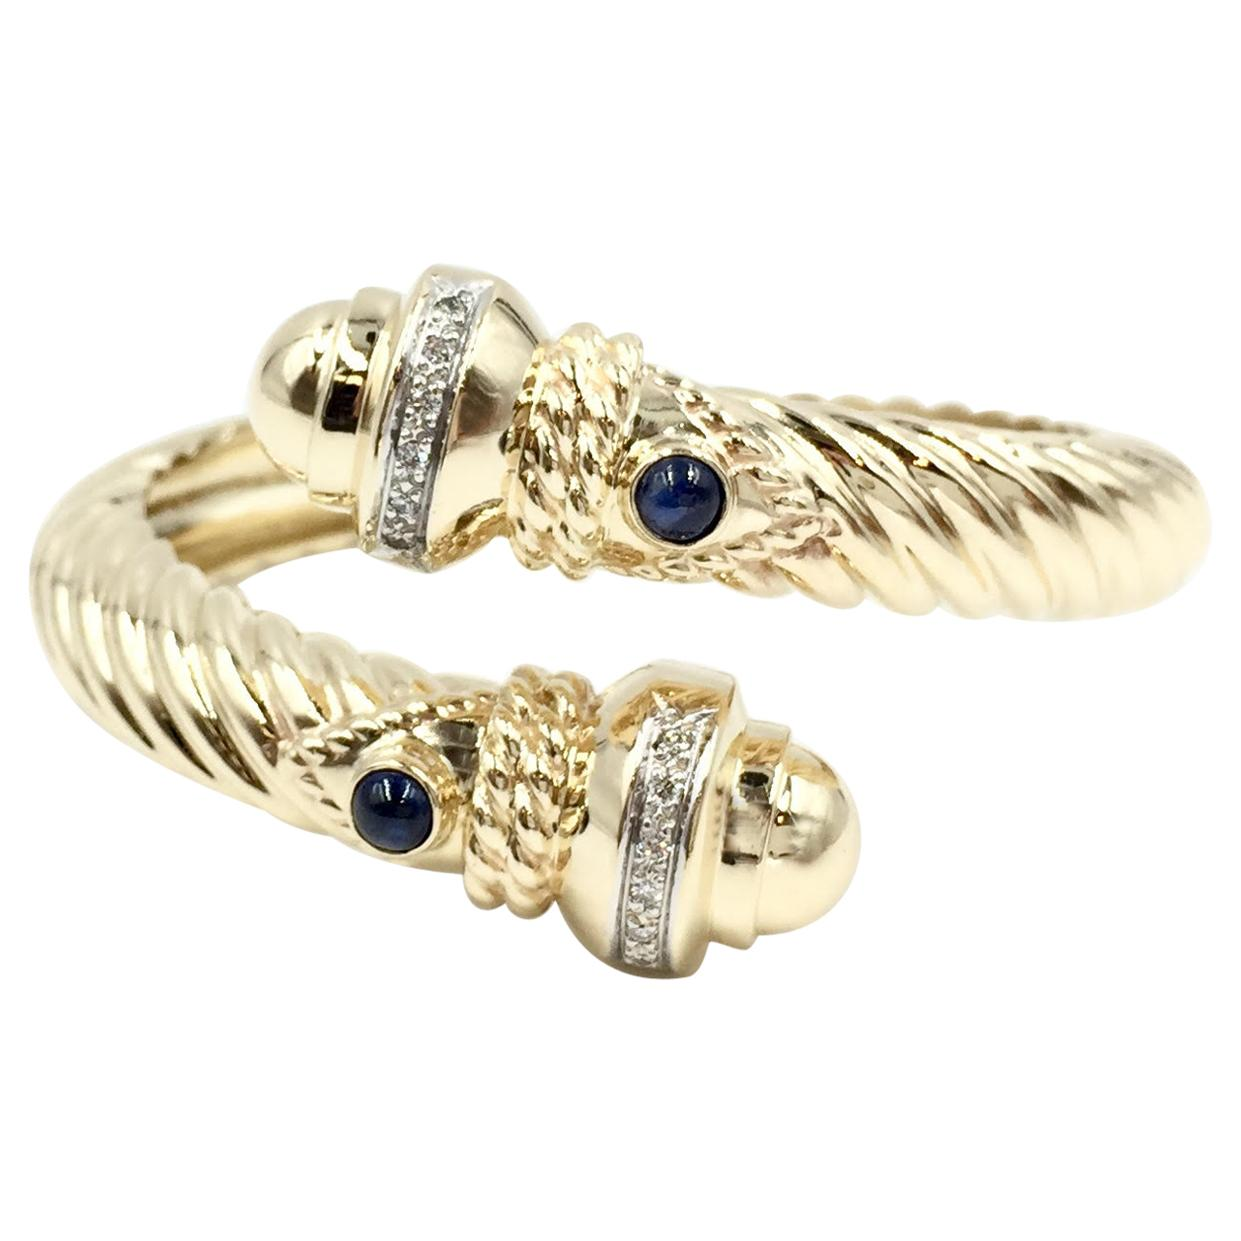 14 Karat Yellow Gold Diamond and Sapphire Bypass Cable Cuff Bracelet